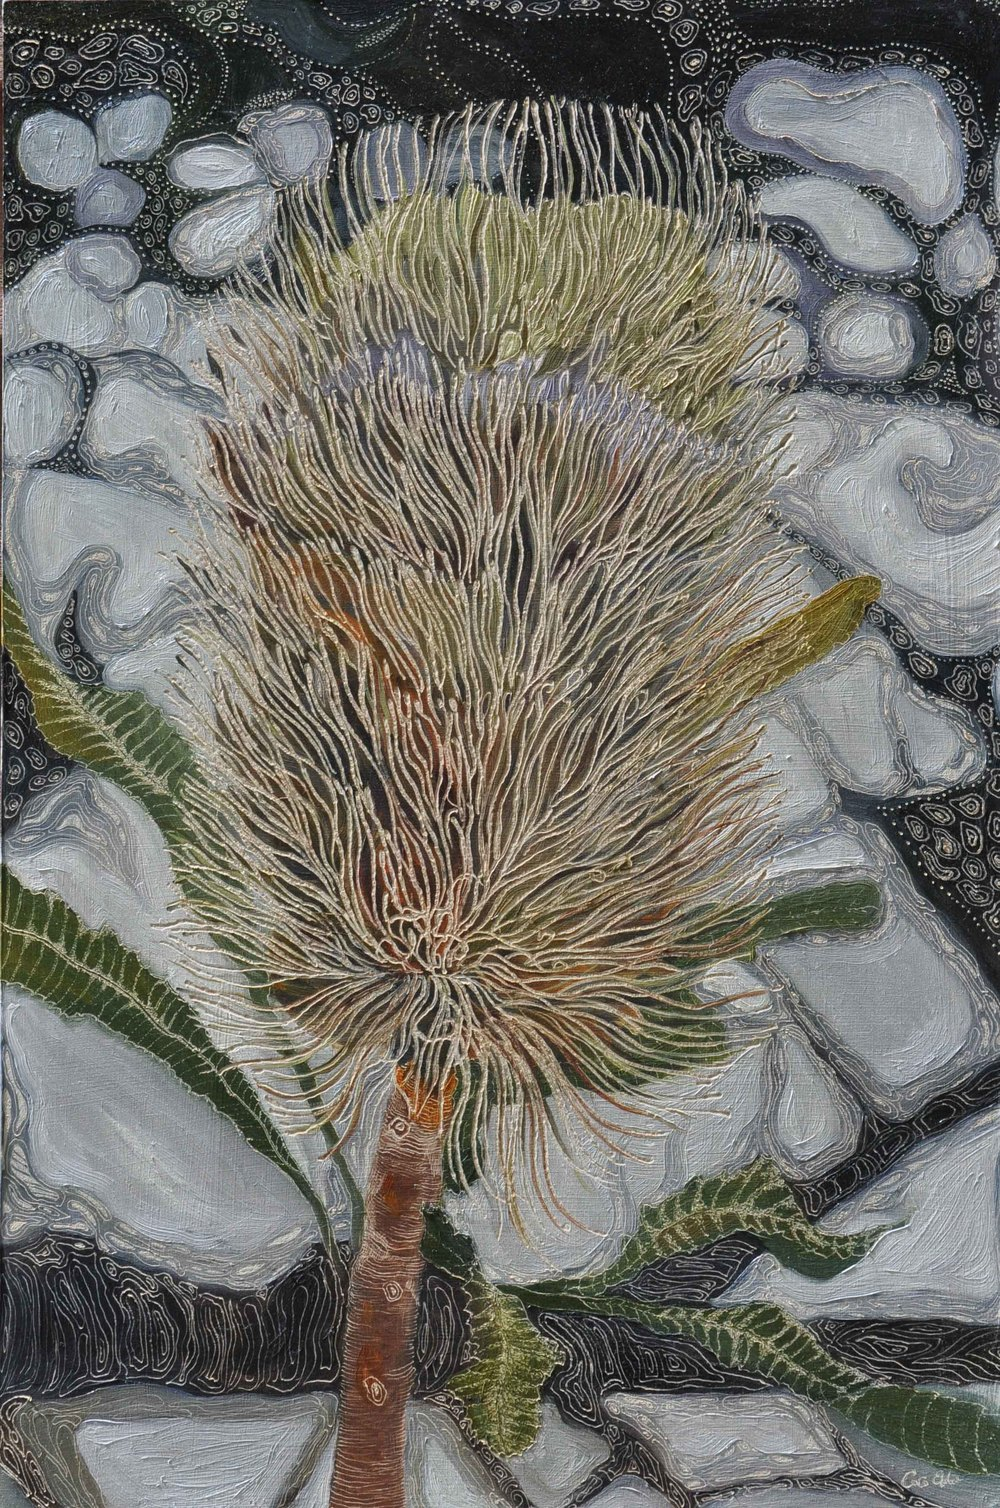 Title: Old Man Banksia- New World